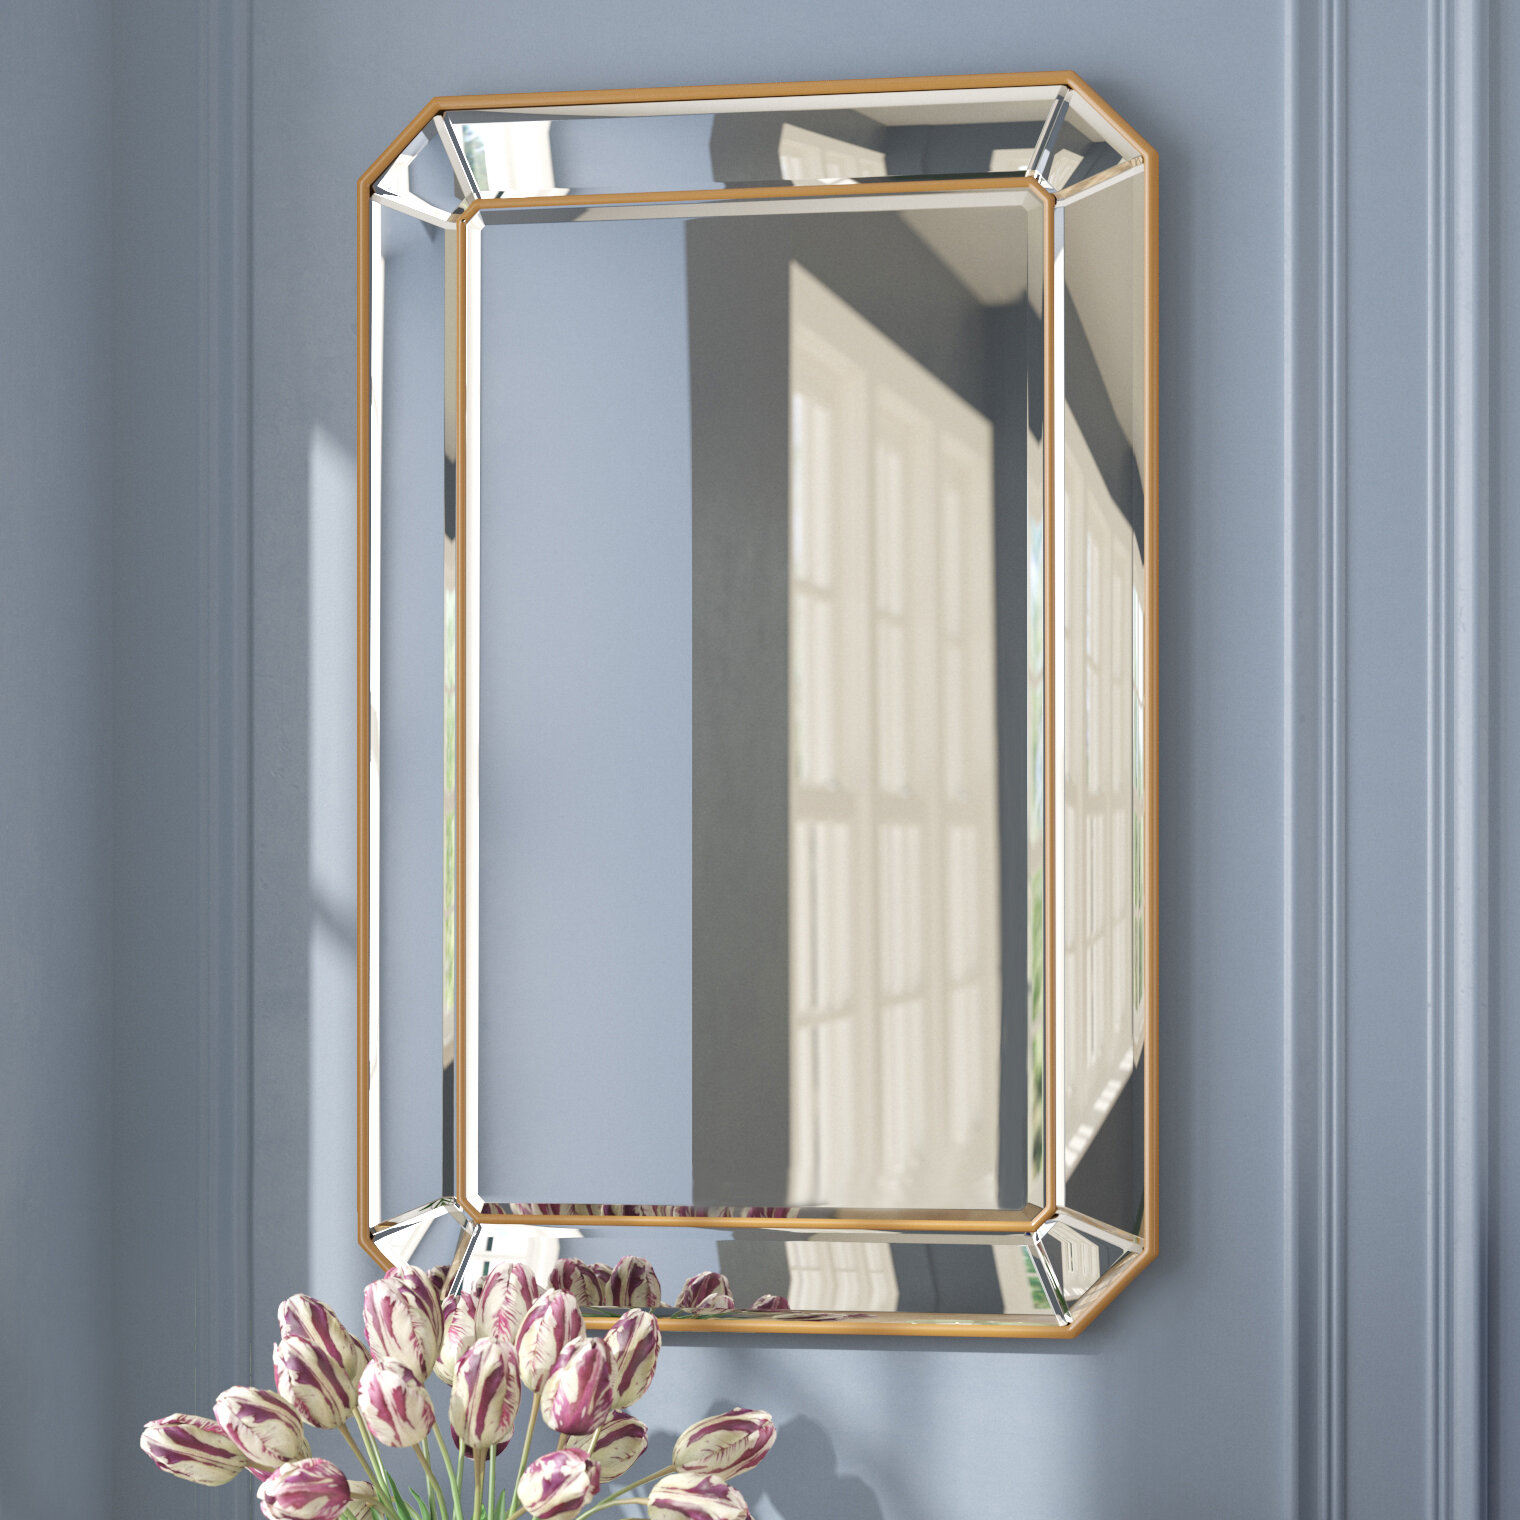 Willa Arlo Interiors Briley Rectangle Gold Angled Accent Wall Mirror